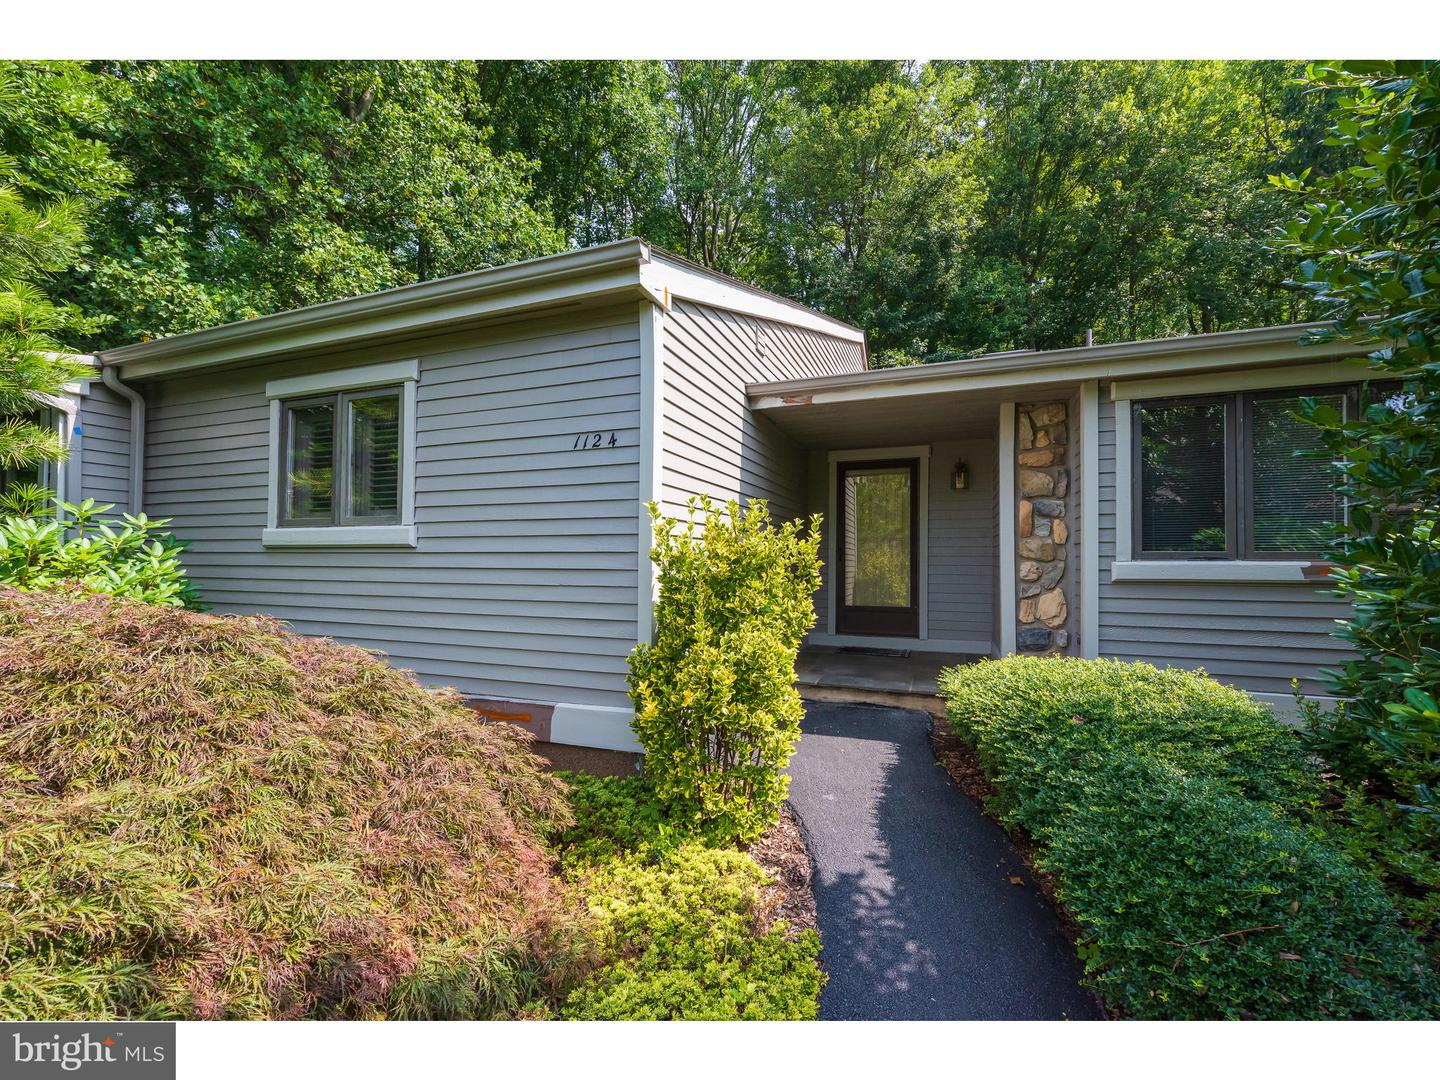 1124 Merrifield Drive West Chester, PA 19380